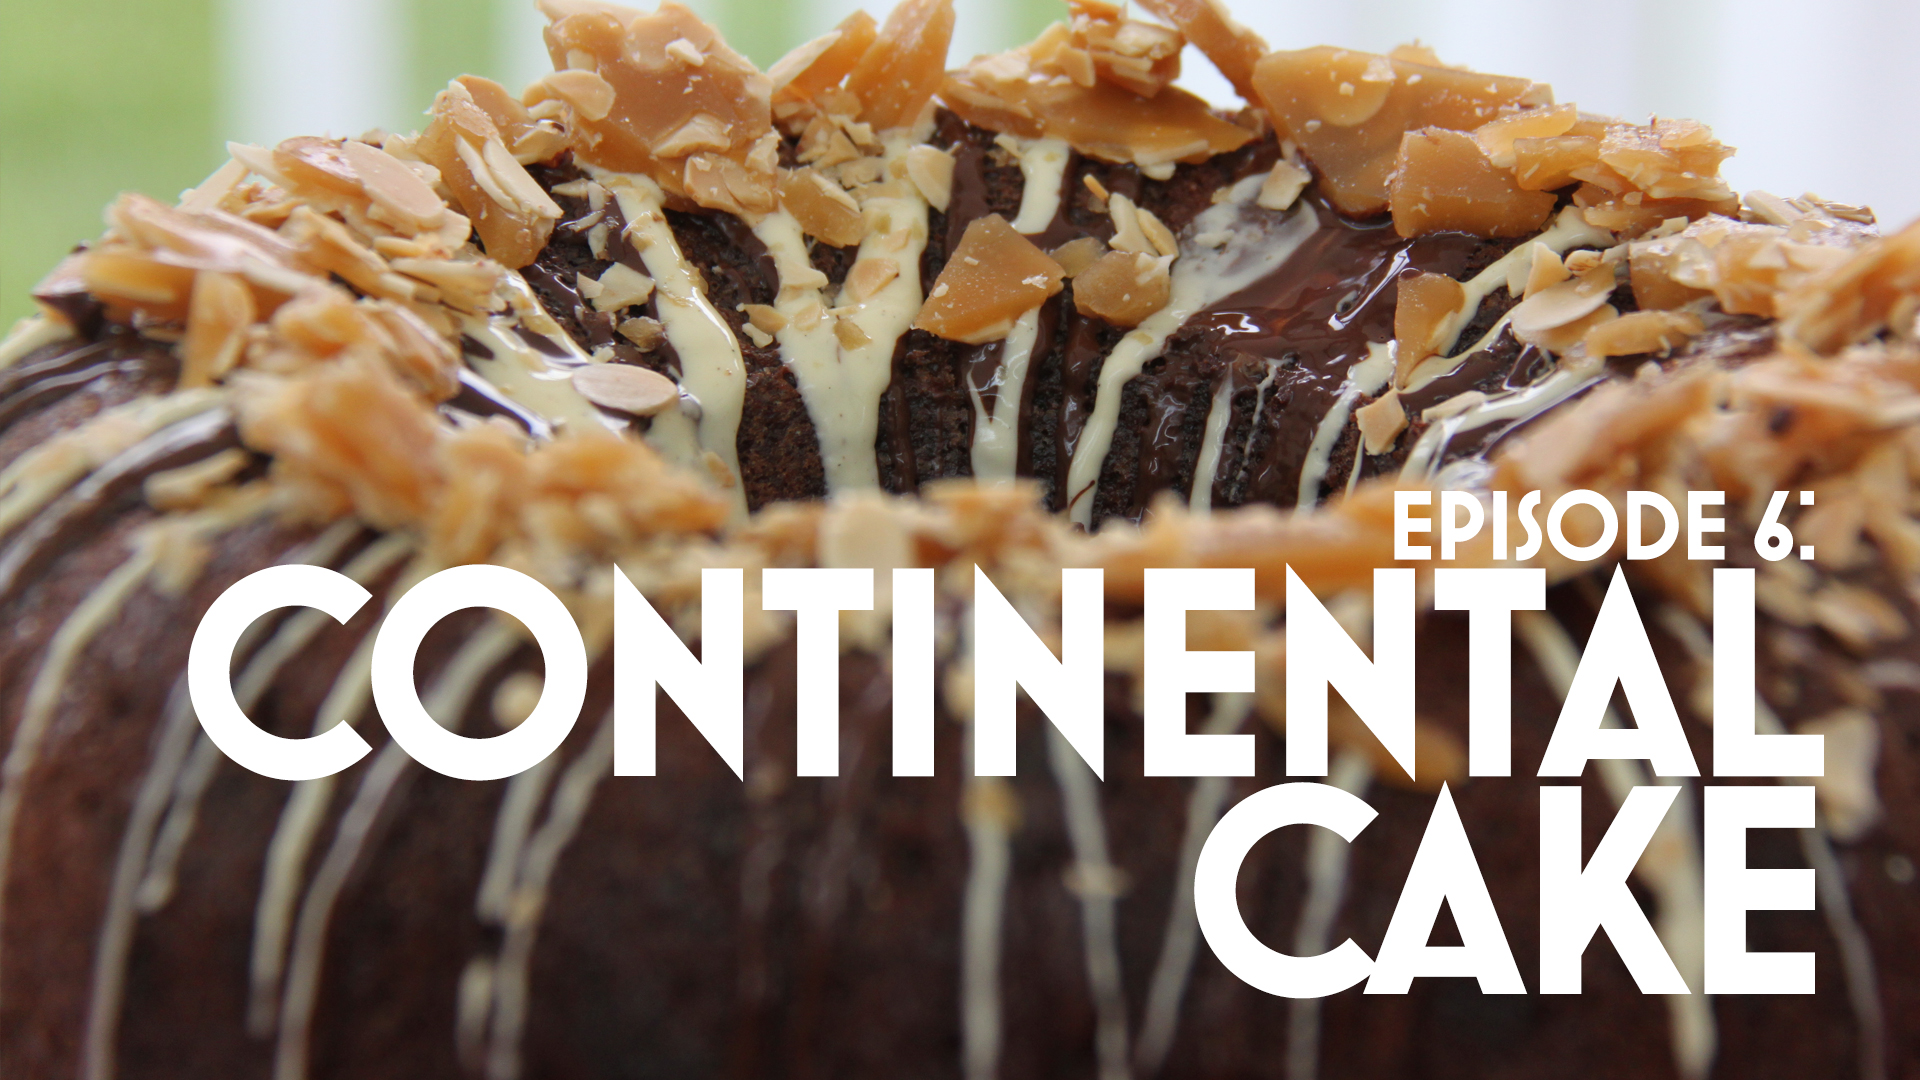 Episode 6: Continental Cake